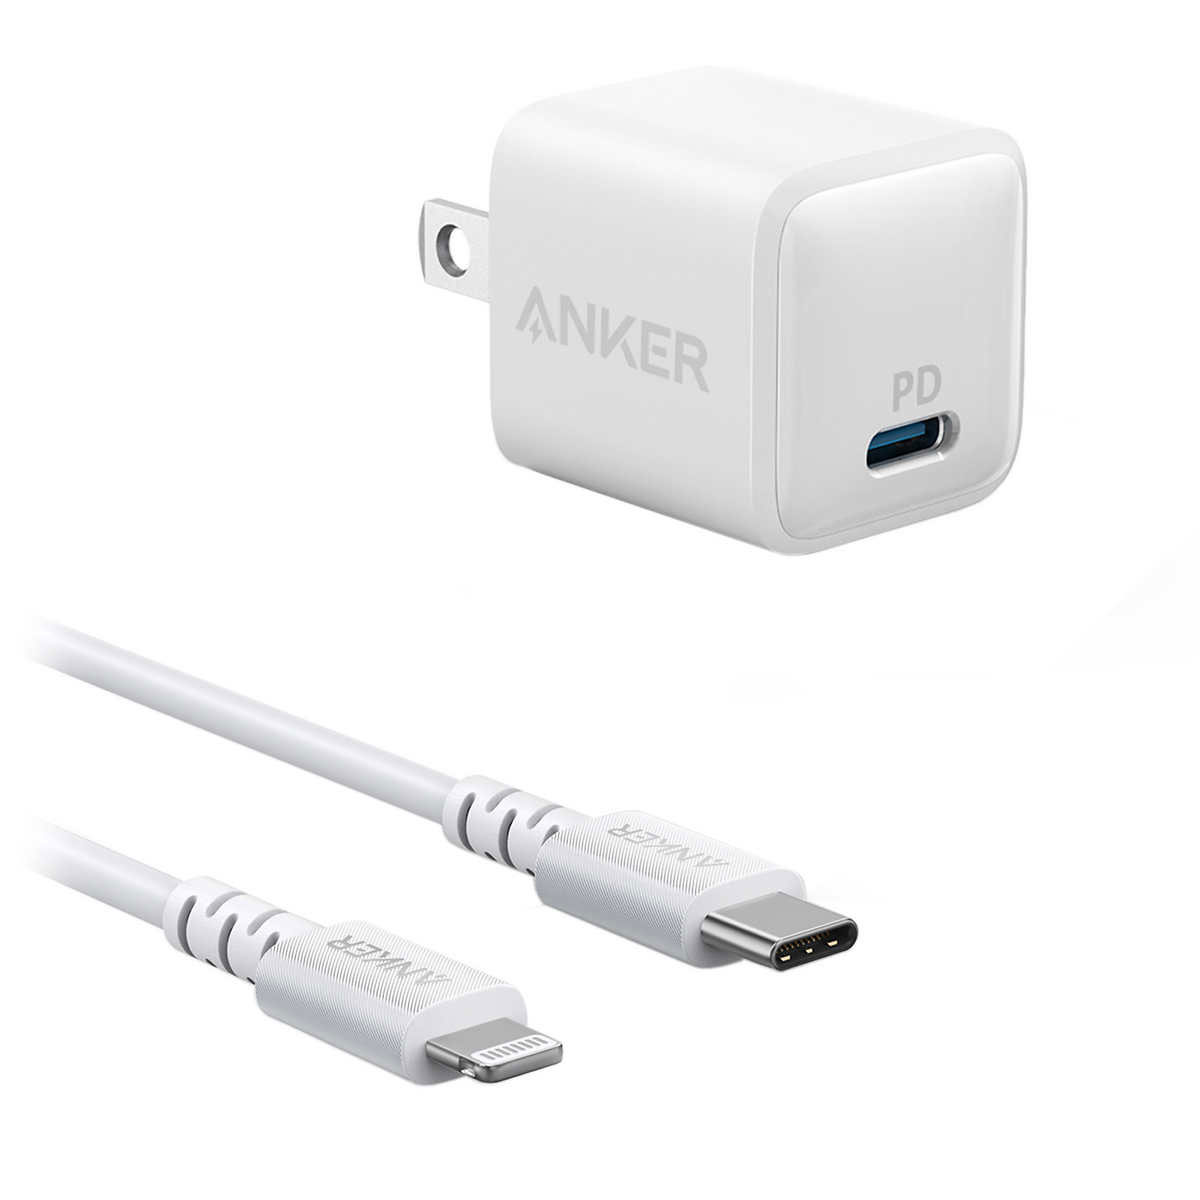 ANKER PowerPort Nano PD USB-C Charger & Cable OPEN BOX